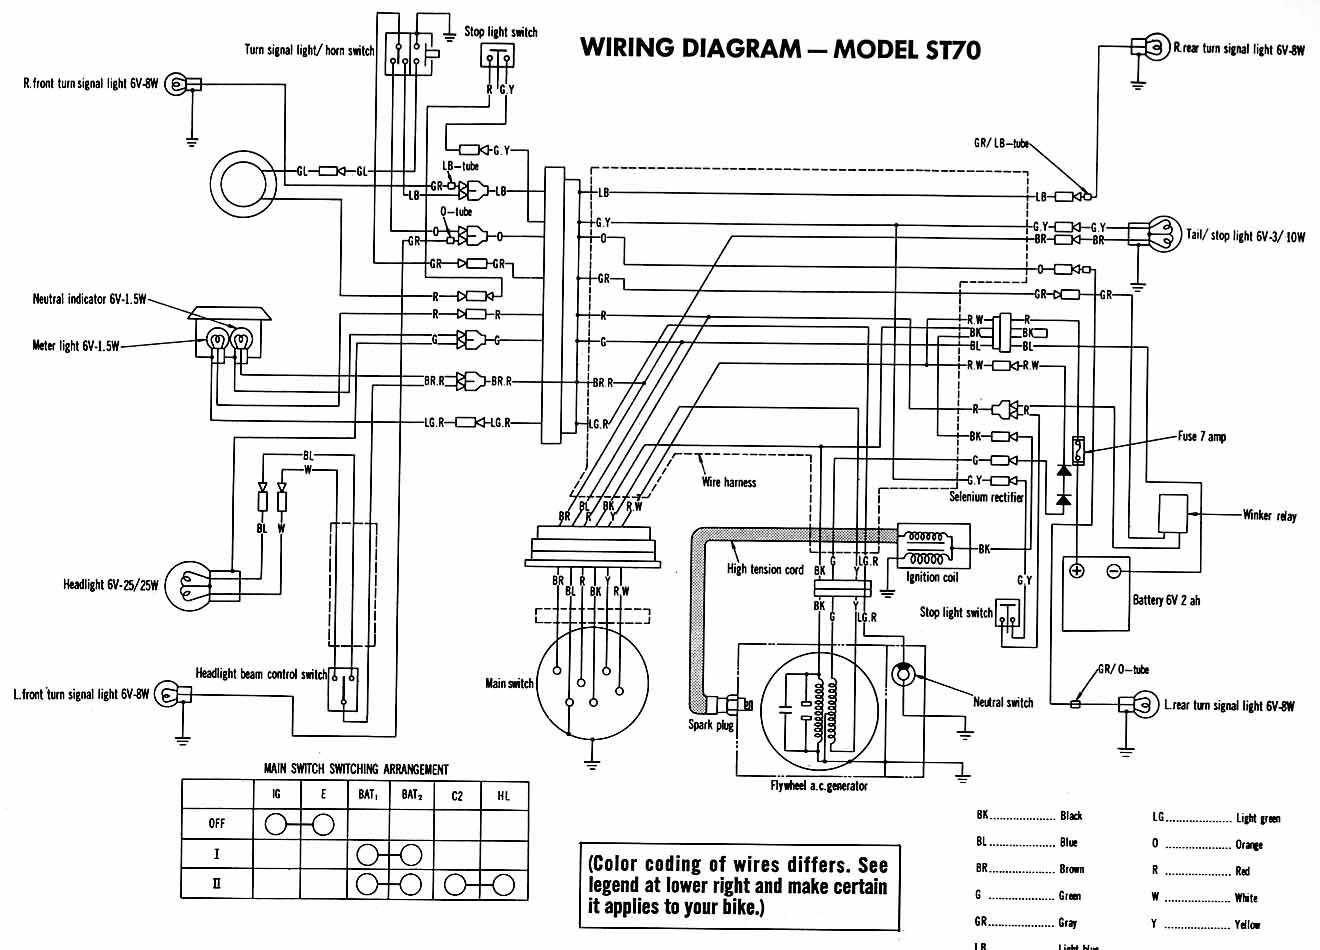 honda 660 wire diagram honda wiring diagrams honda wiring diagrams